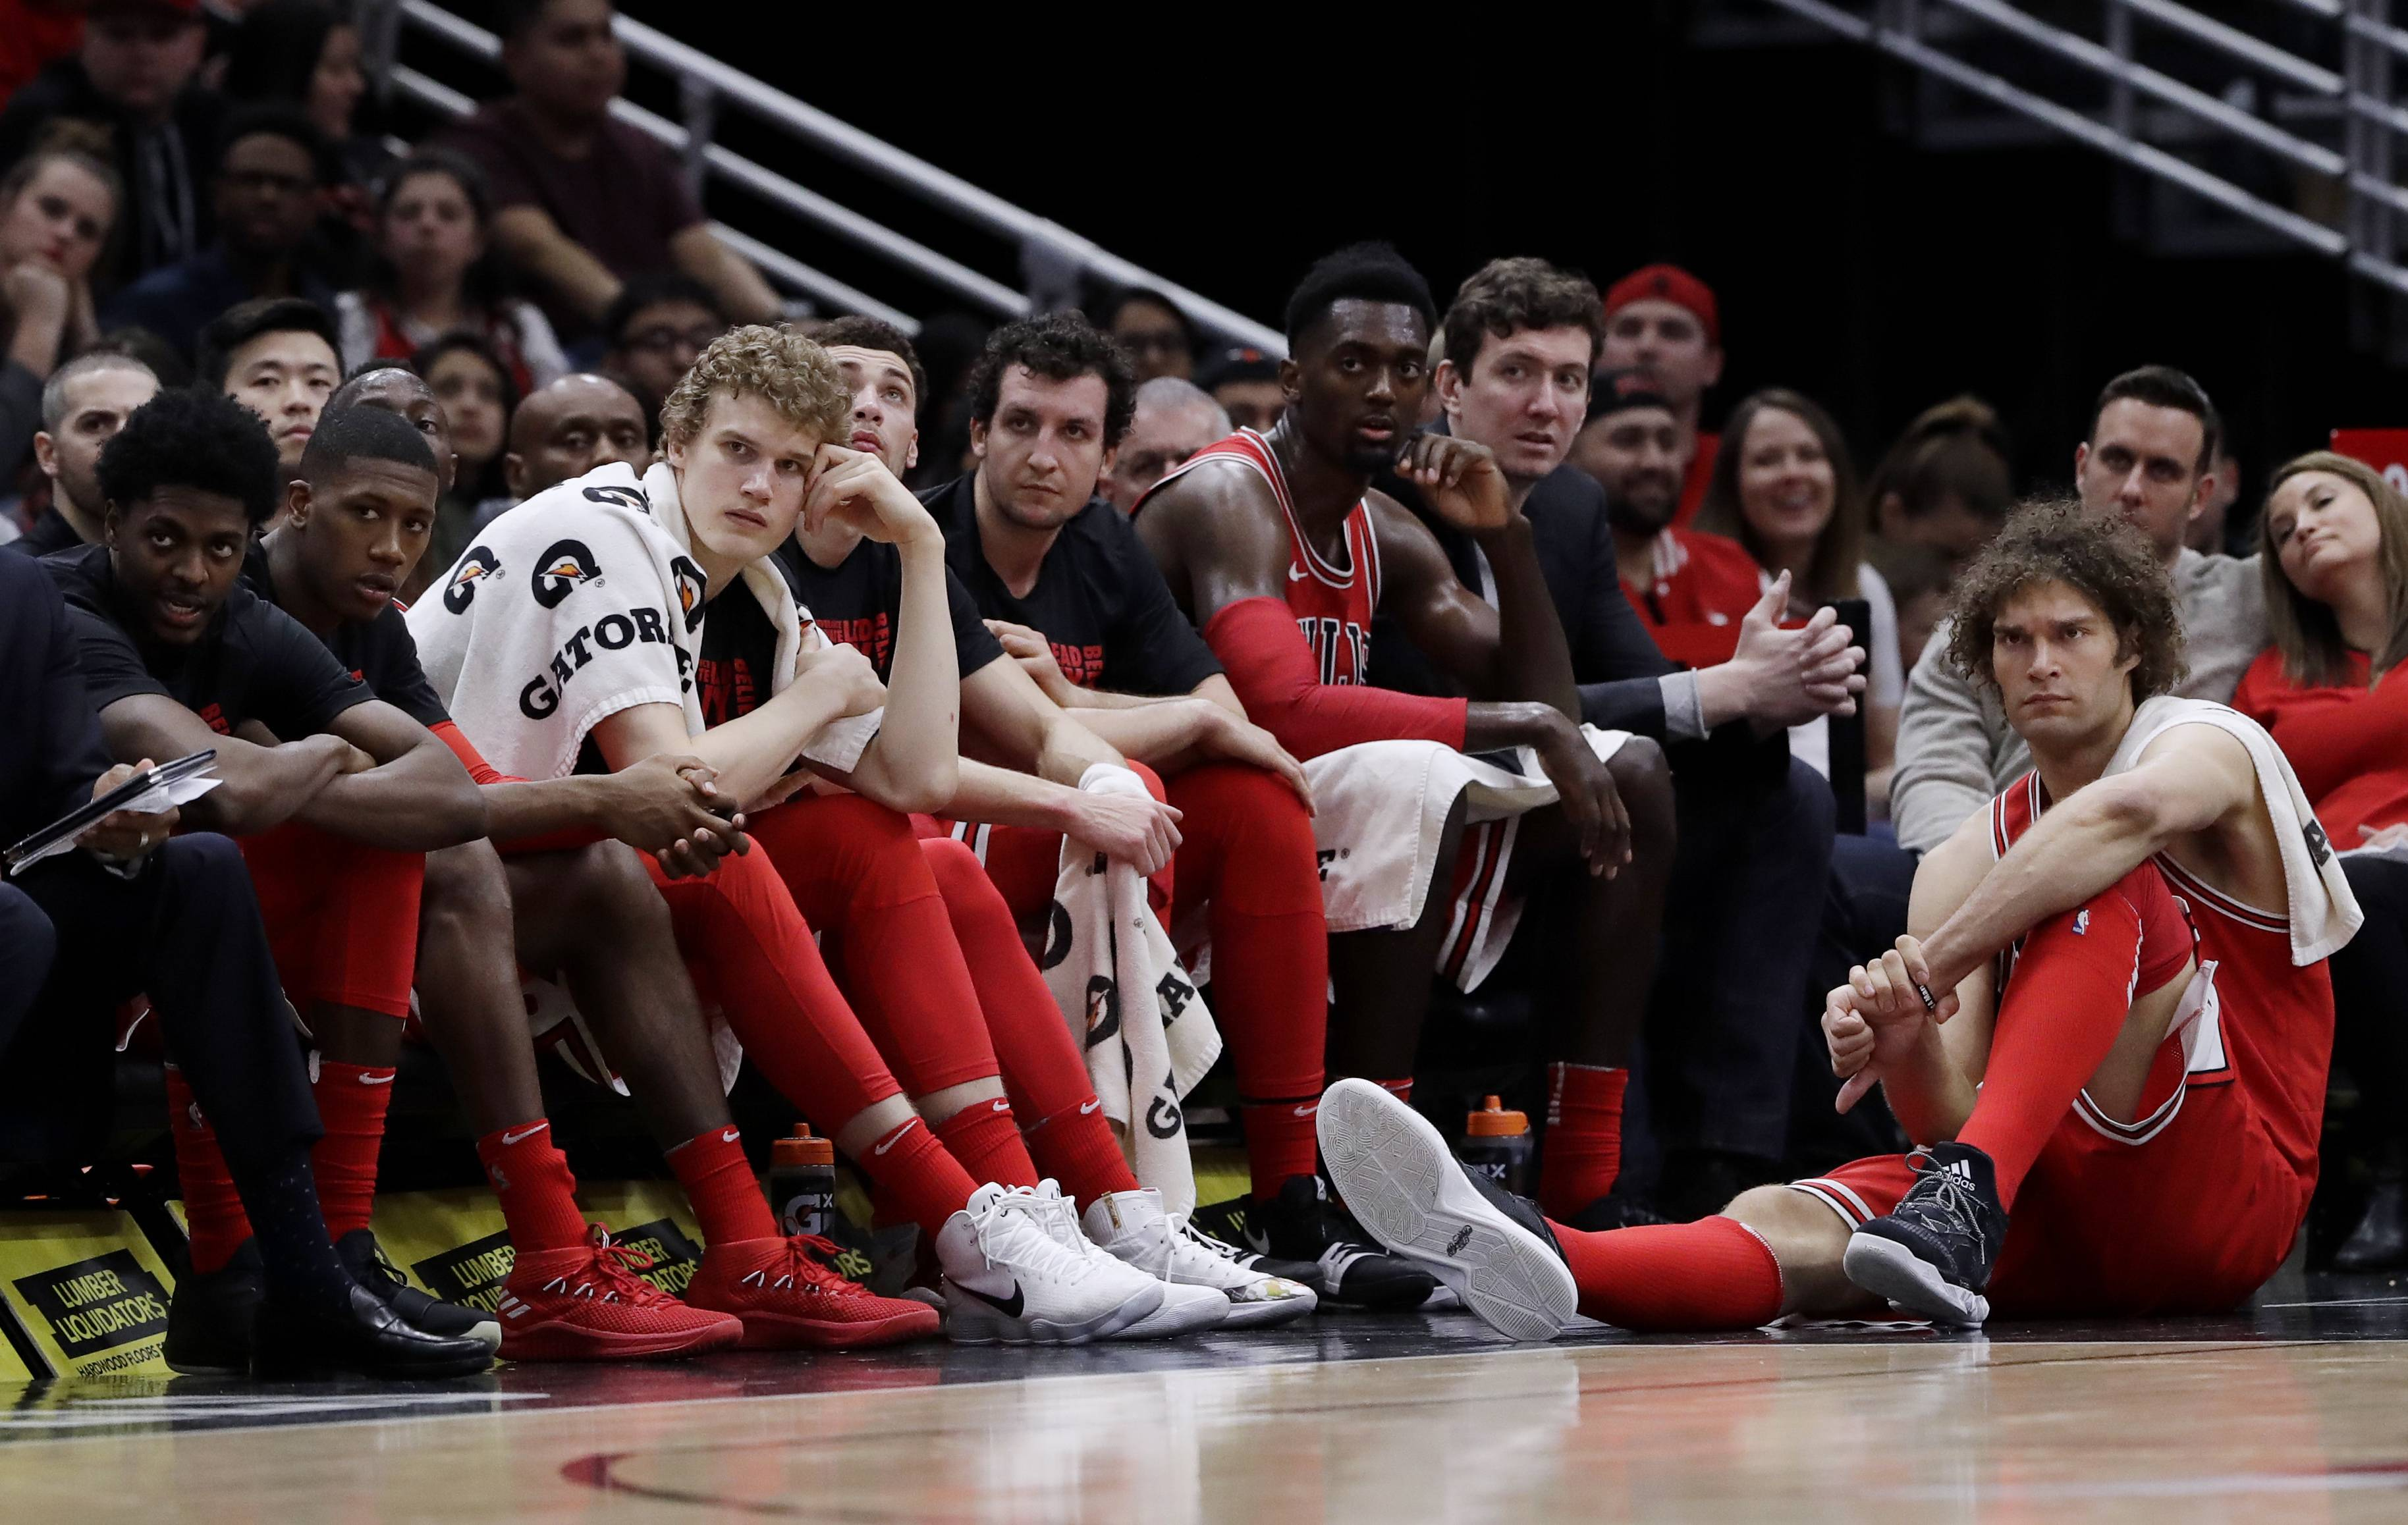 Chicago Bulls players react as they watch teammates during the second half of an NBA basketball game against the Toronto Raptors, Wednesday, Feb. 14, 2018, in Chicago. The Raptors won 122-98.